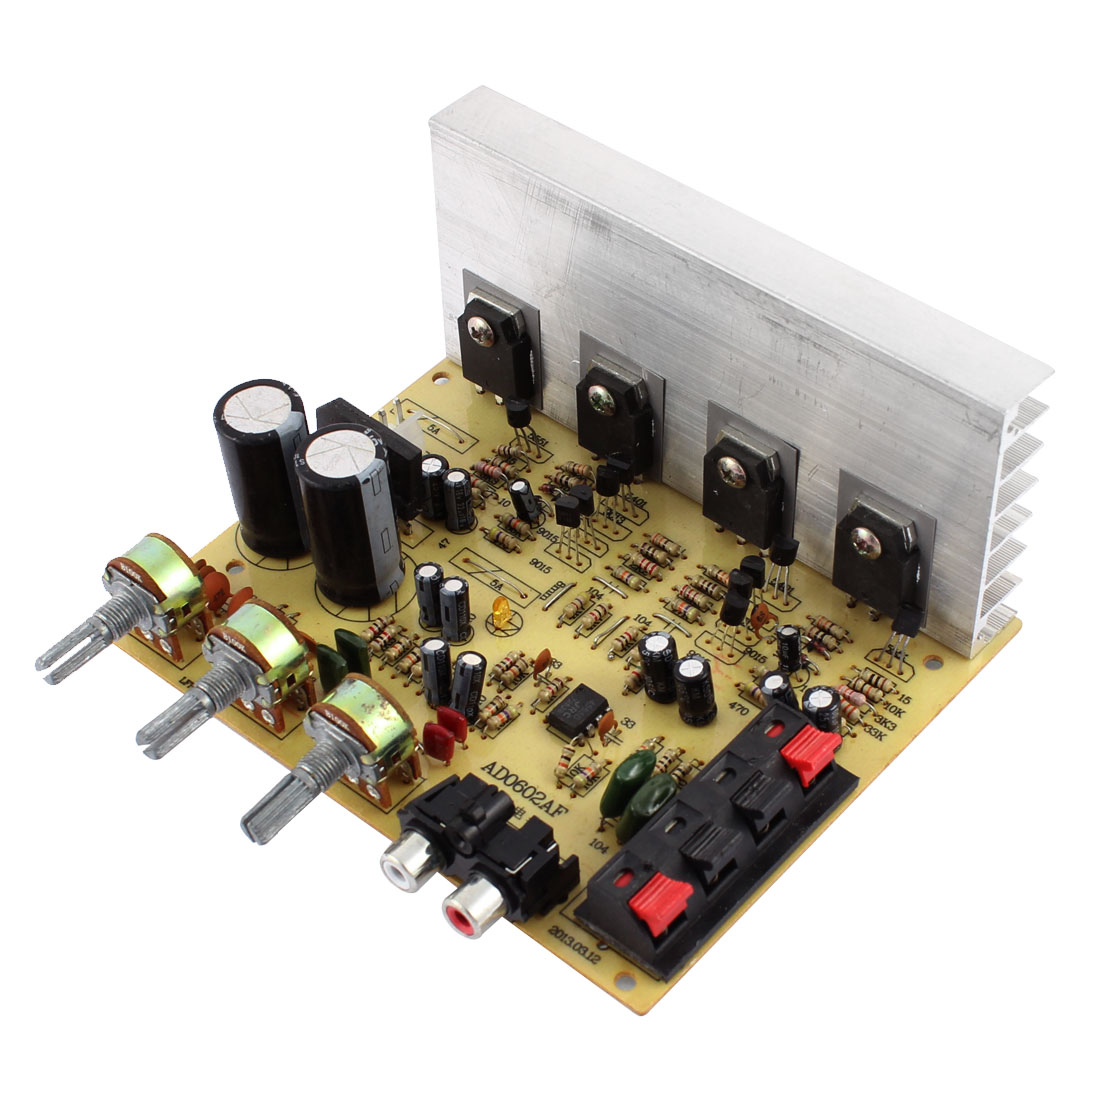 AC 12V 60W+60W LFE Subwoofer Audio Hi-Fi 2 Channel Car Stereo Power Amplifier Board AD0602